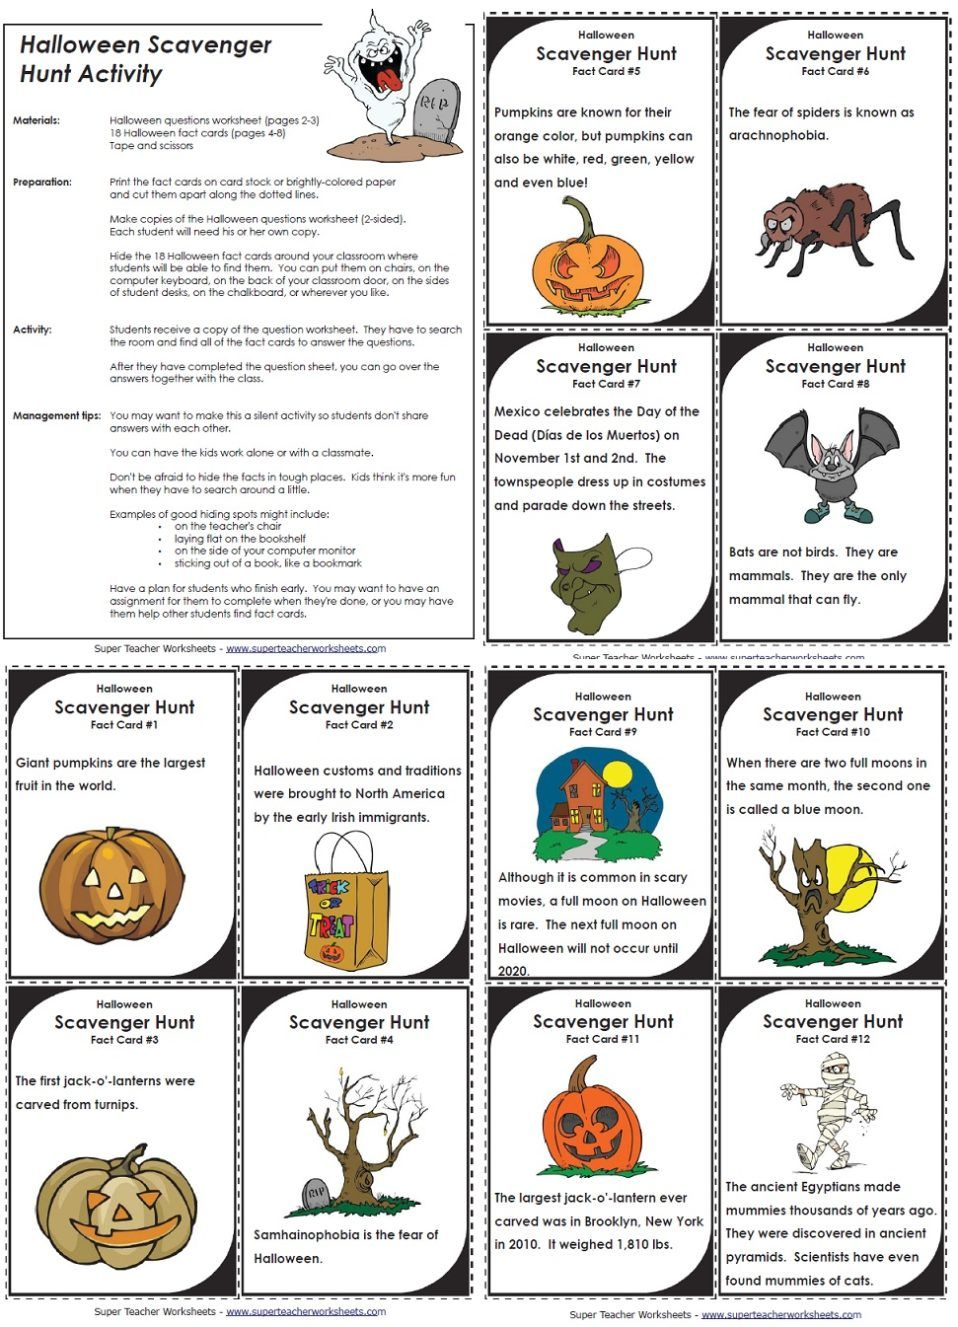 Halloween Scavenger Hunt Ideas For Adults Clues Free